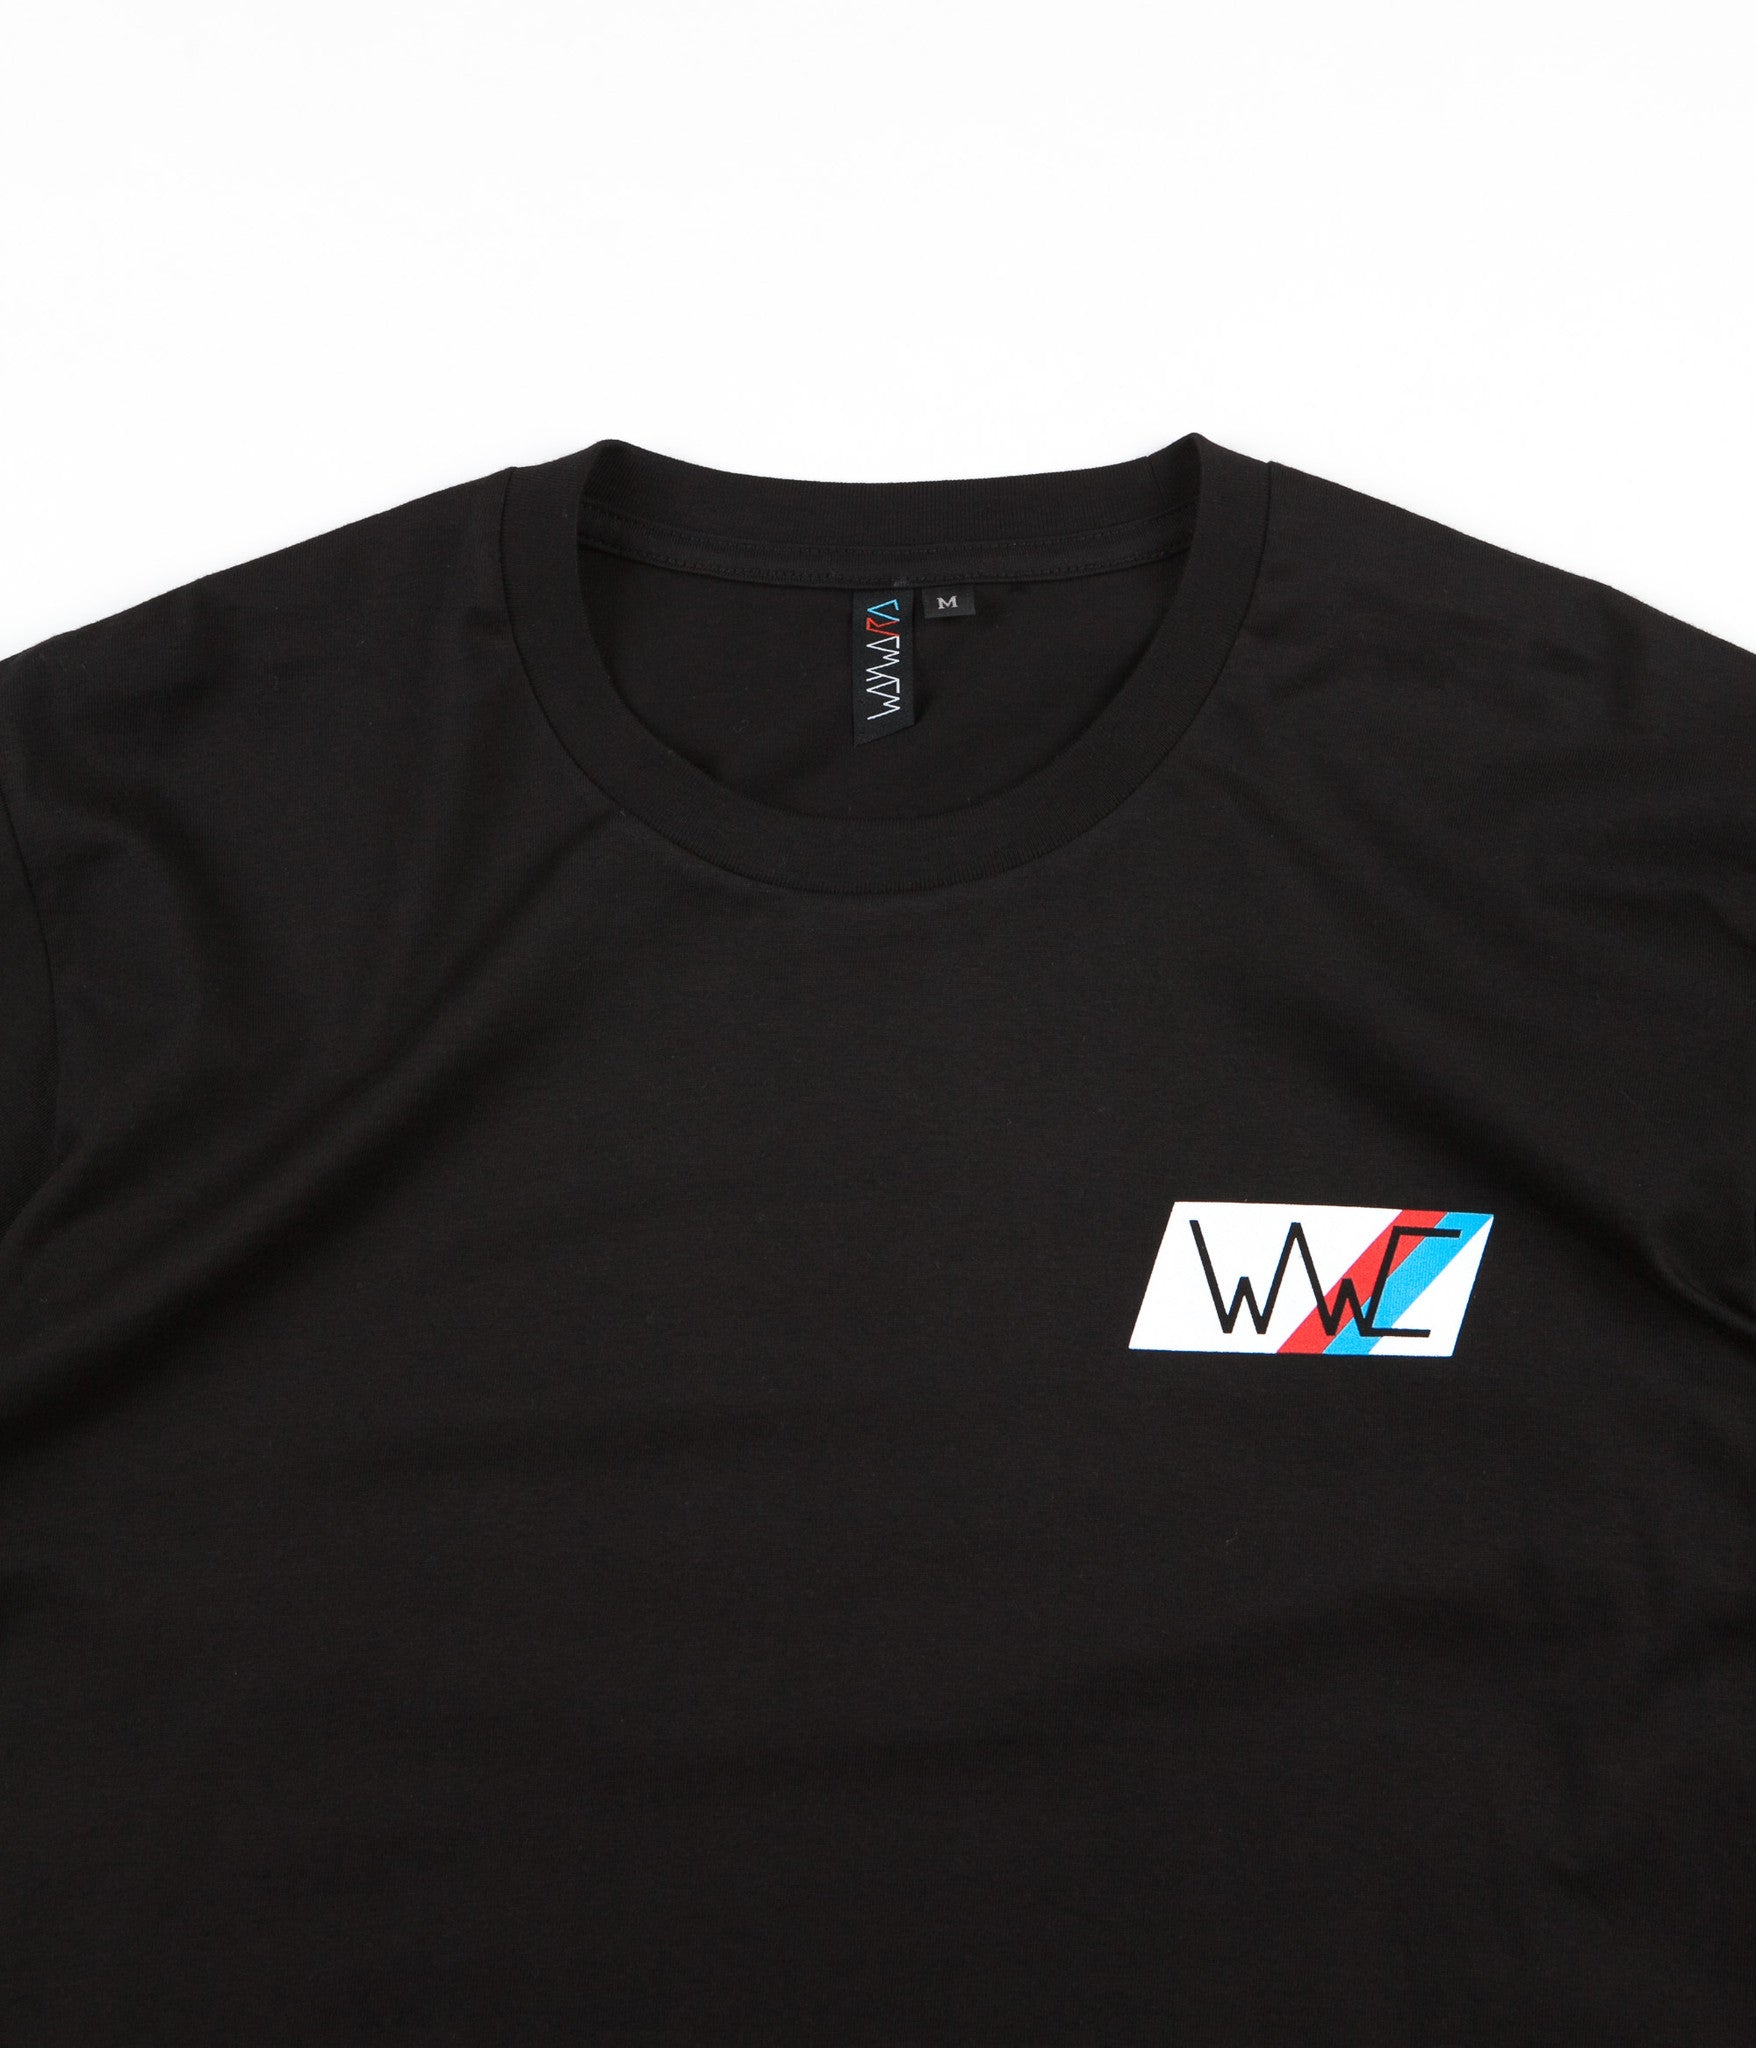 Wayward WWC Signature T-Shirt - Black